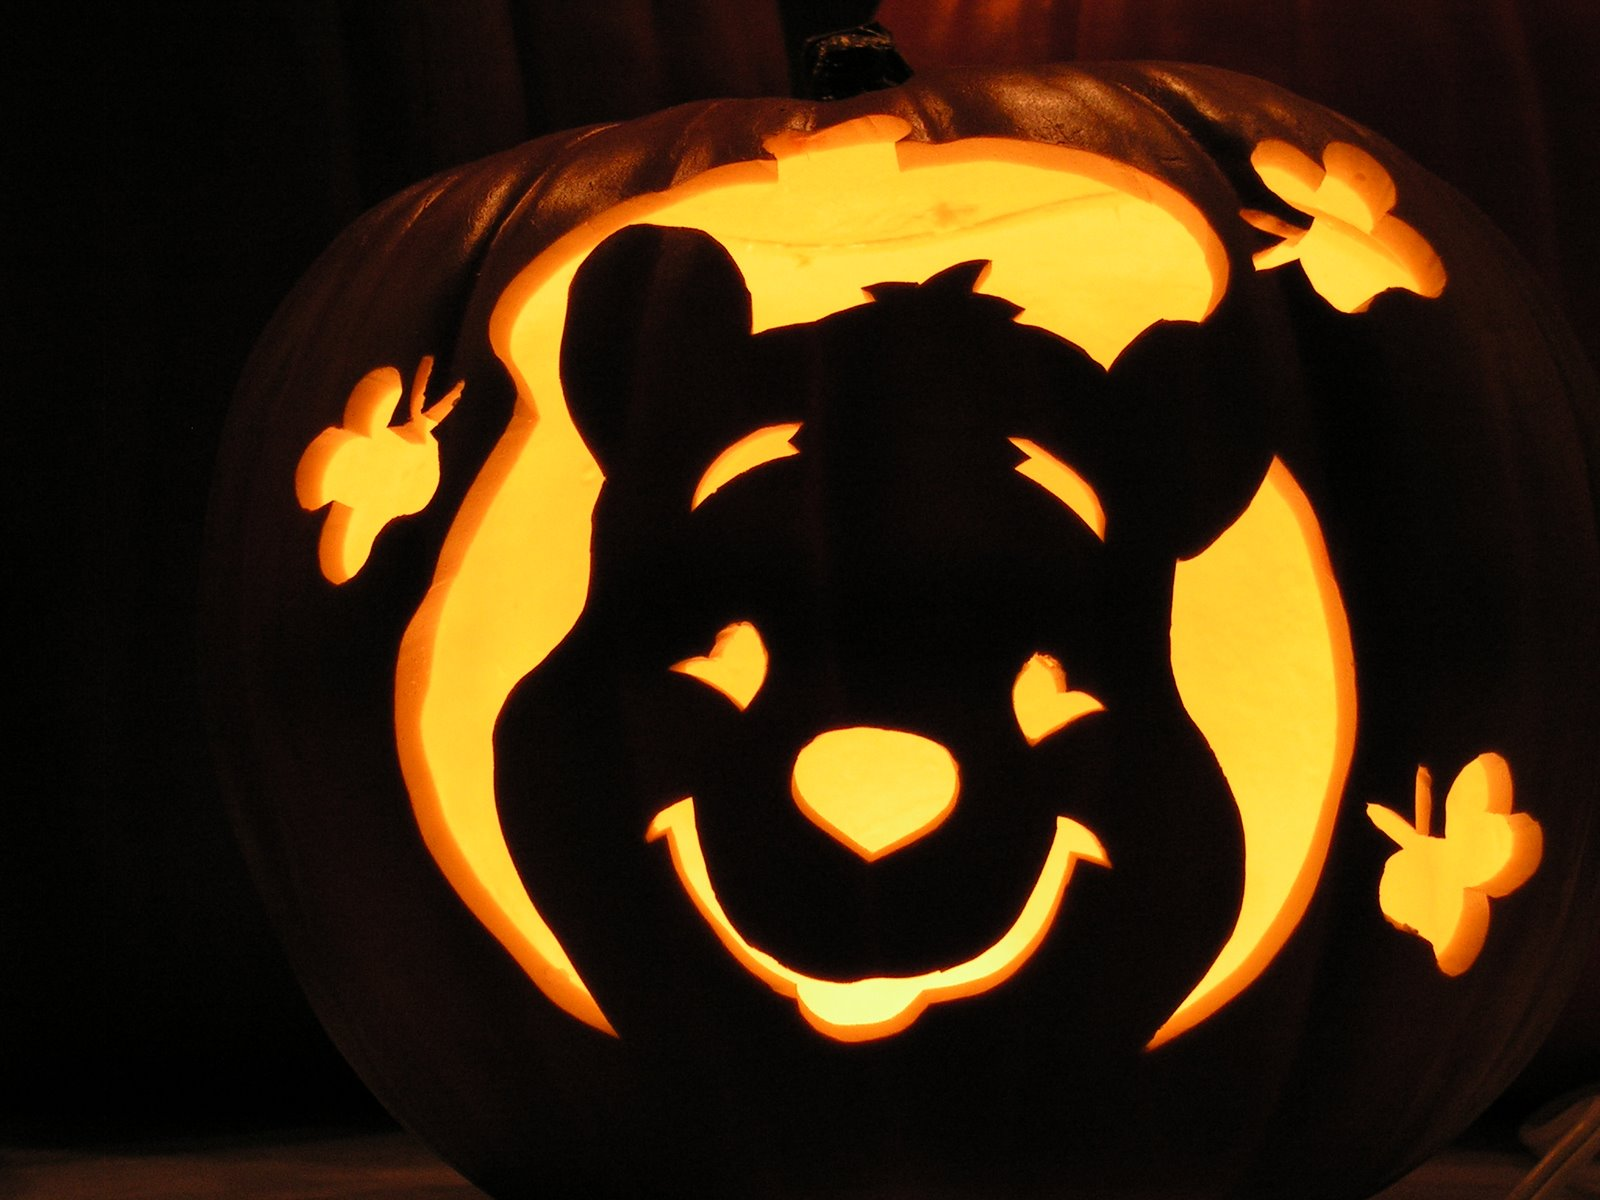 winnie the pooh pumpkin carving templates - pumpkin carving templates